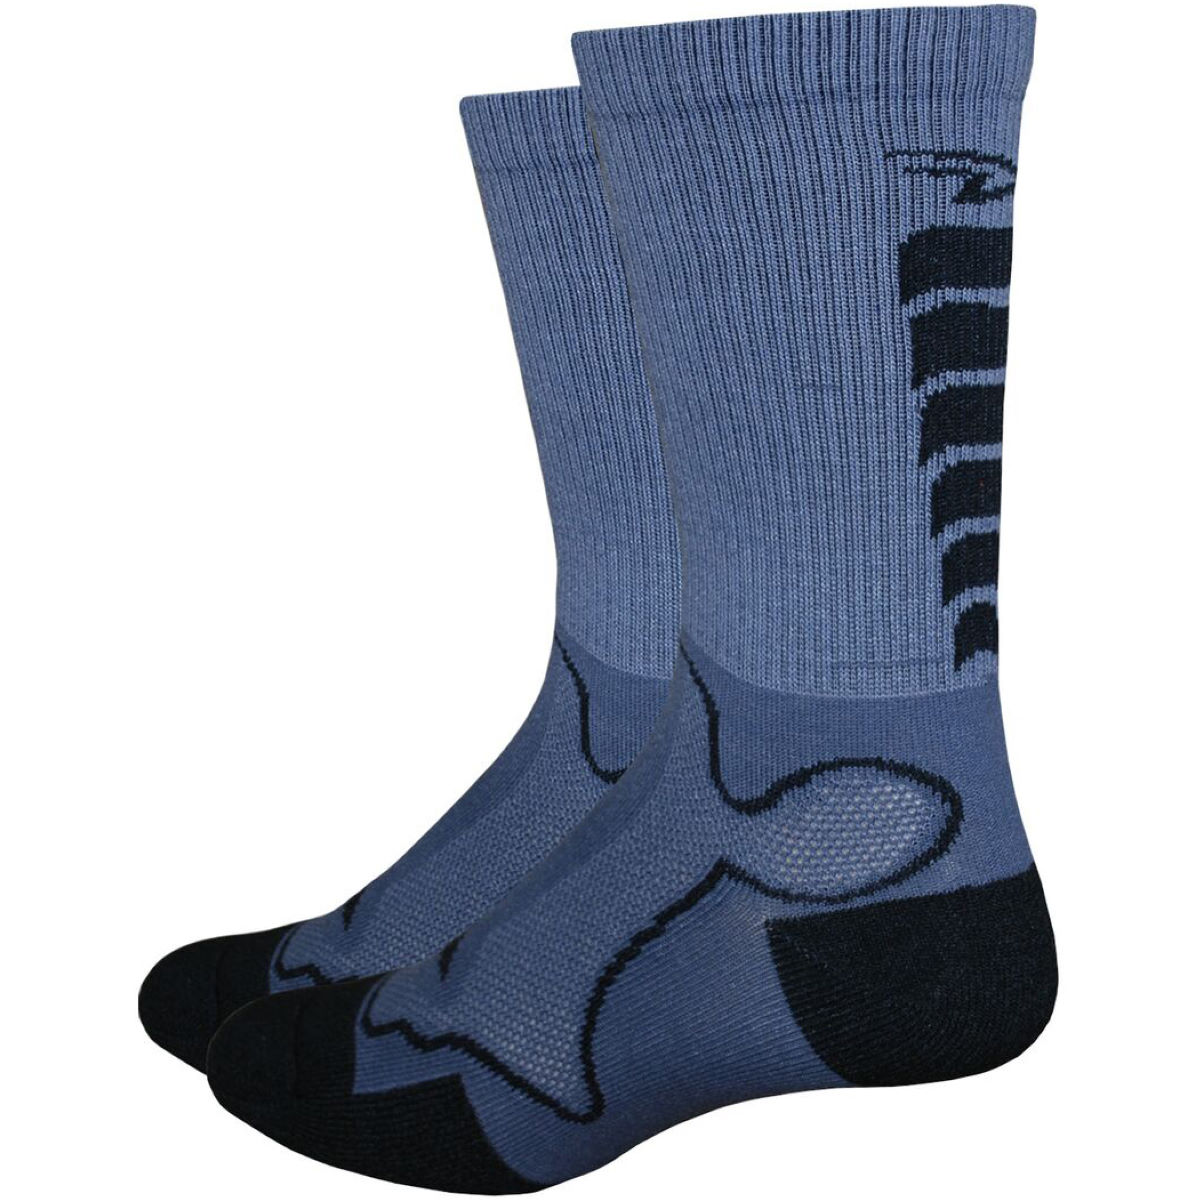 DeFeet DeFeet Leviator Trail Socks   Socks